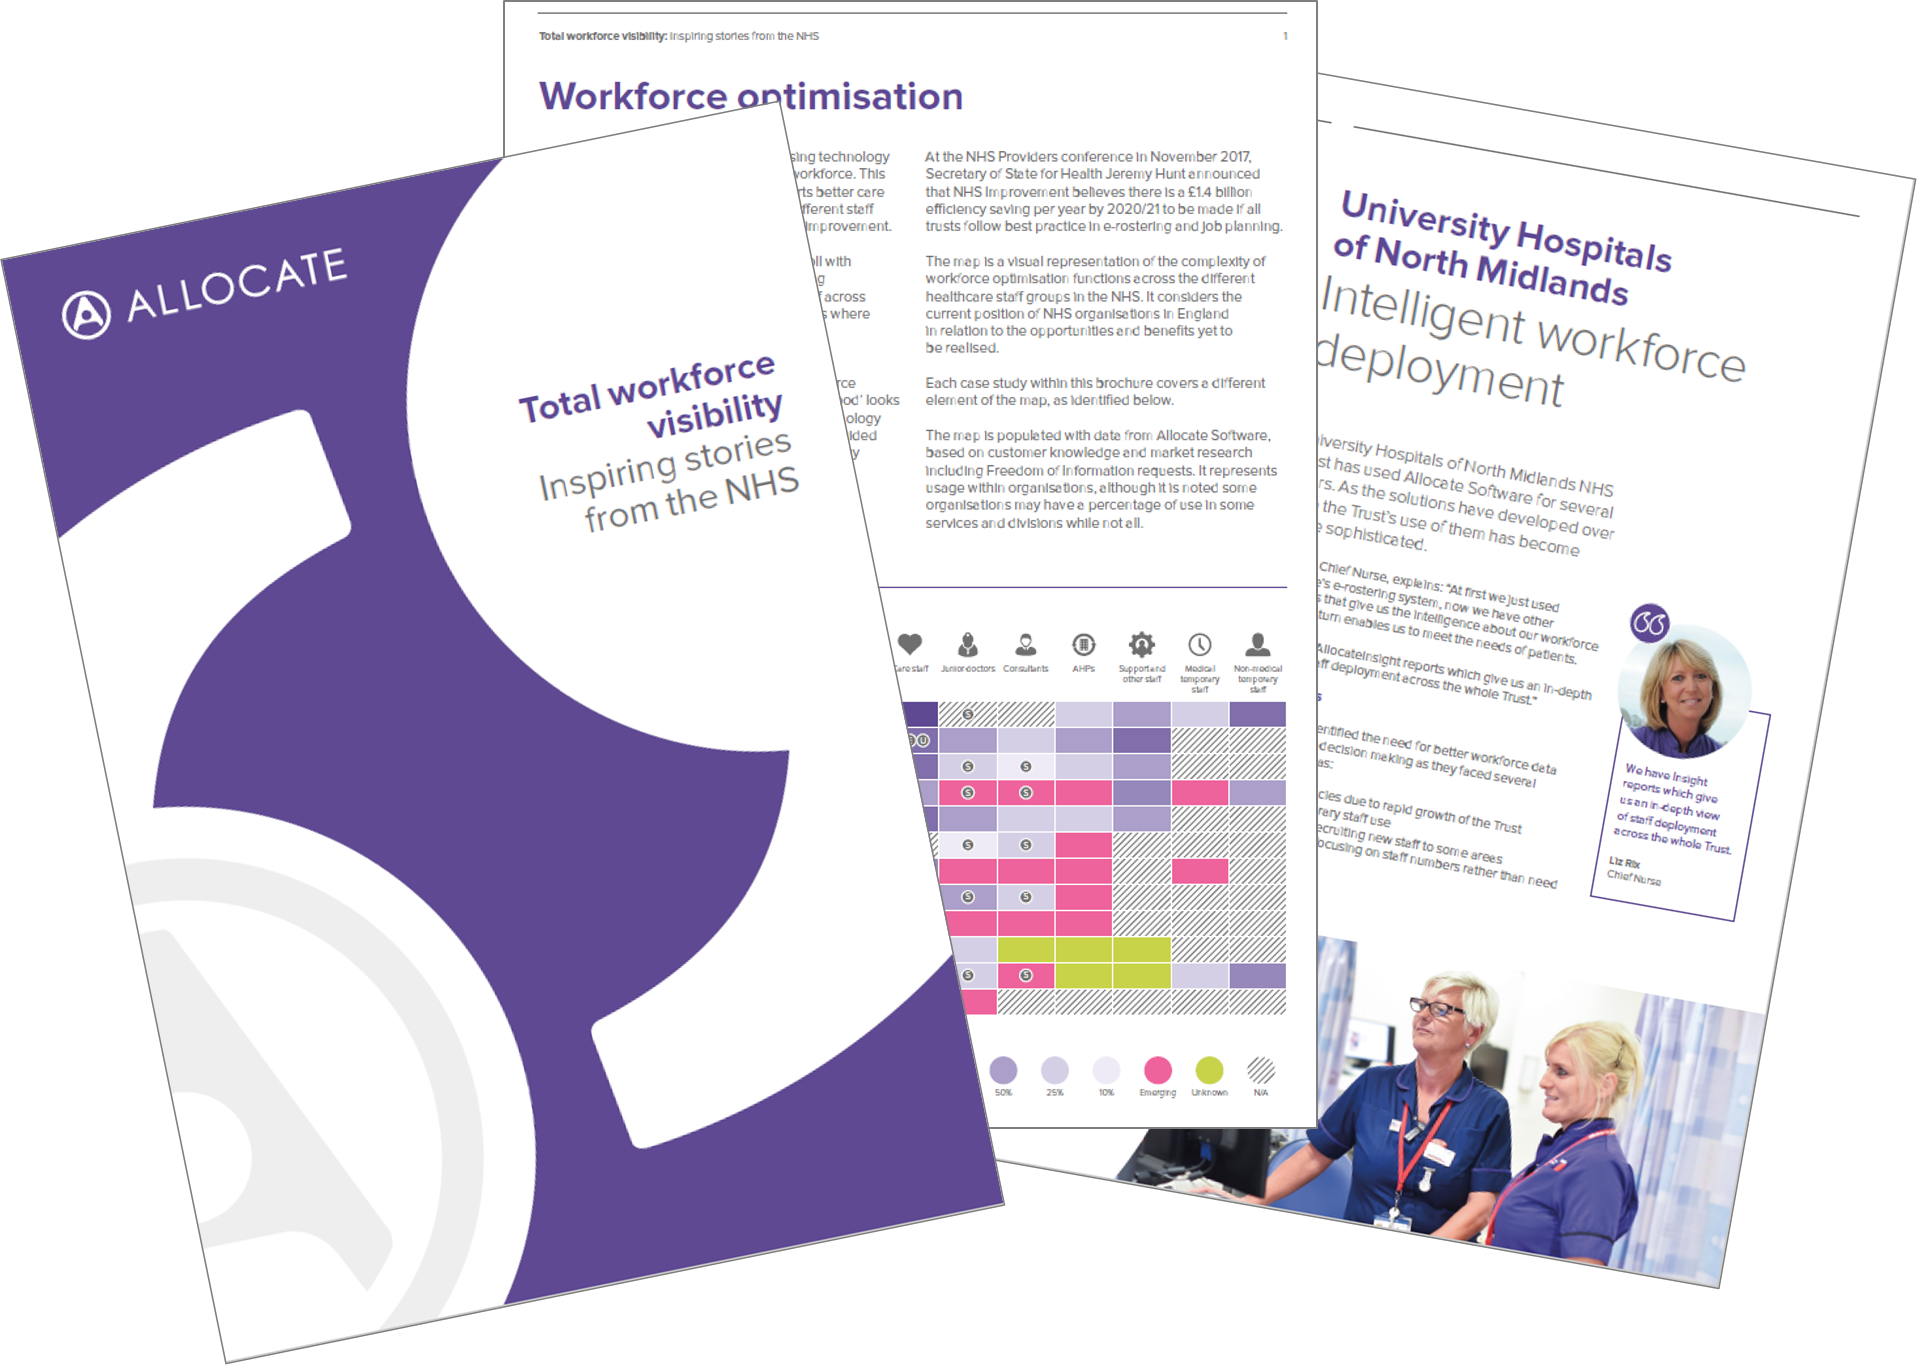 Total workforce visibility Storybook- Inspiring stories from